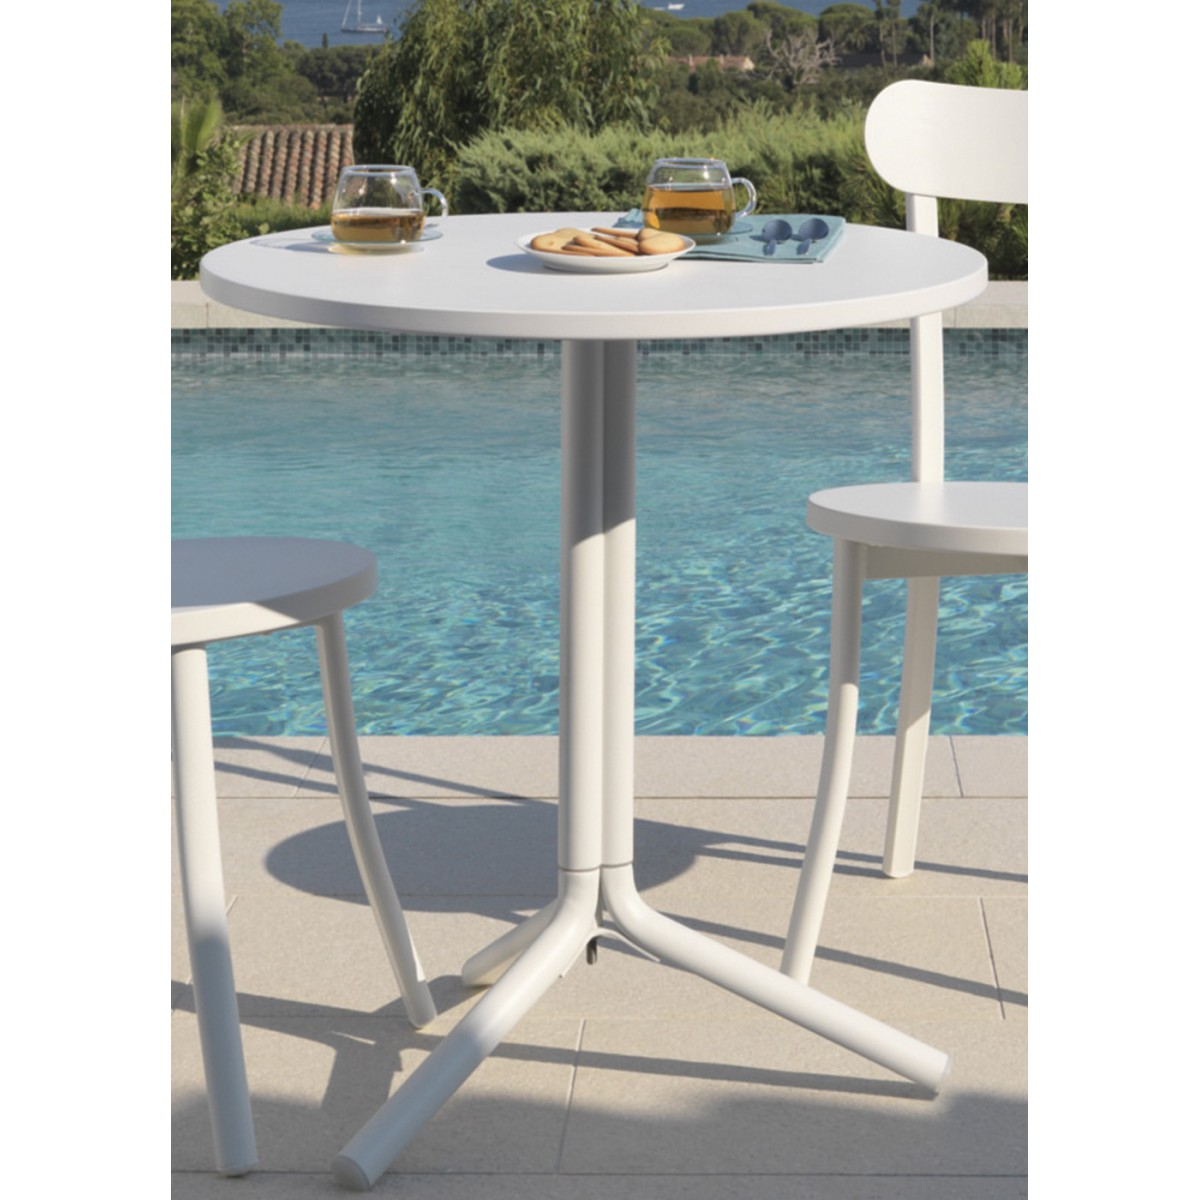 Table exterieur ronde maison design for Table exterieur intermarche